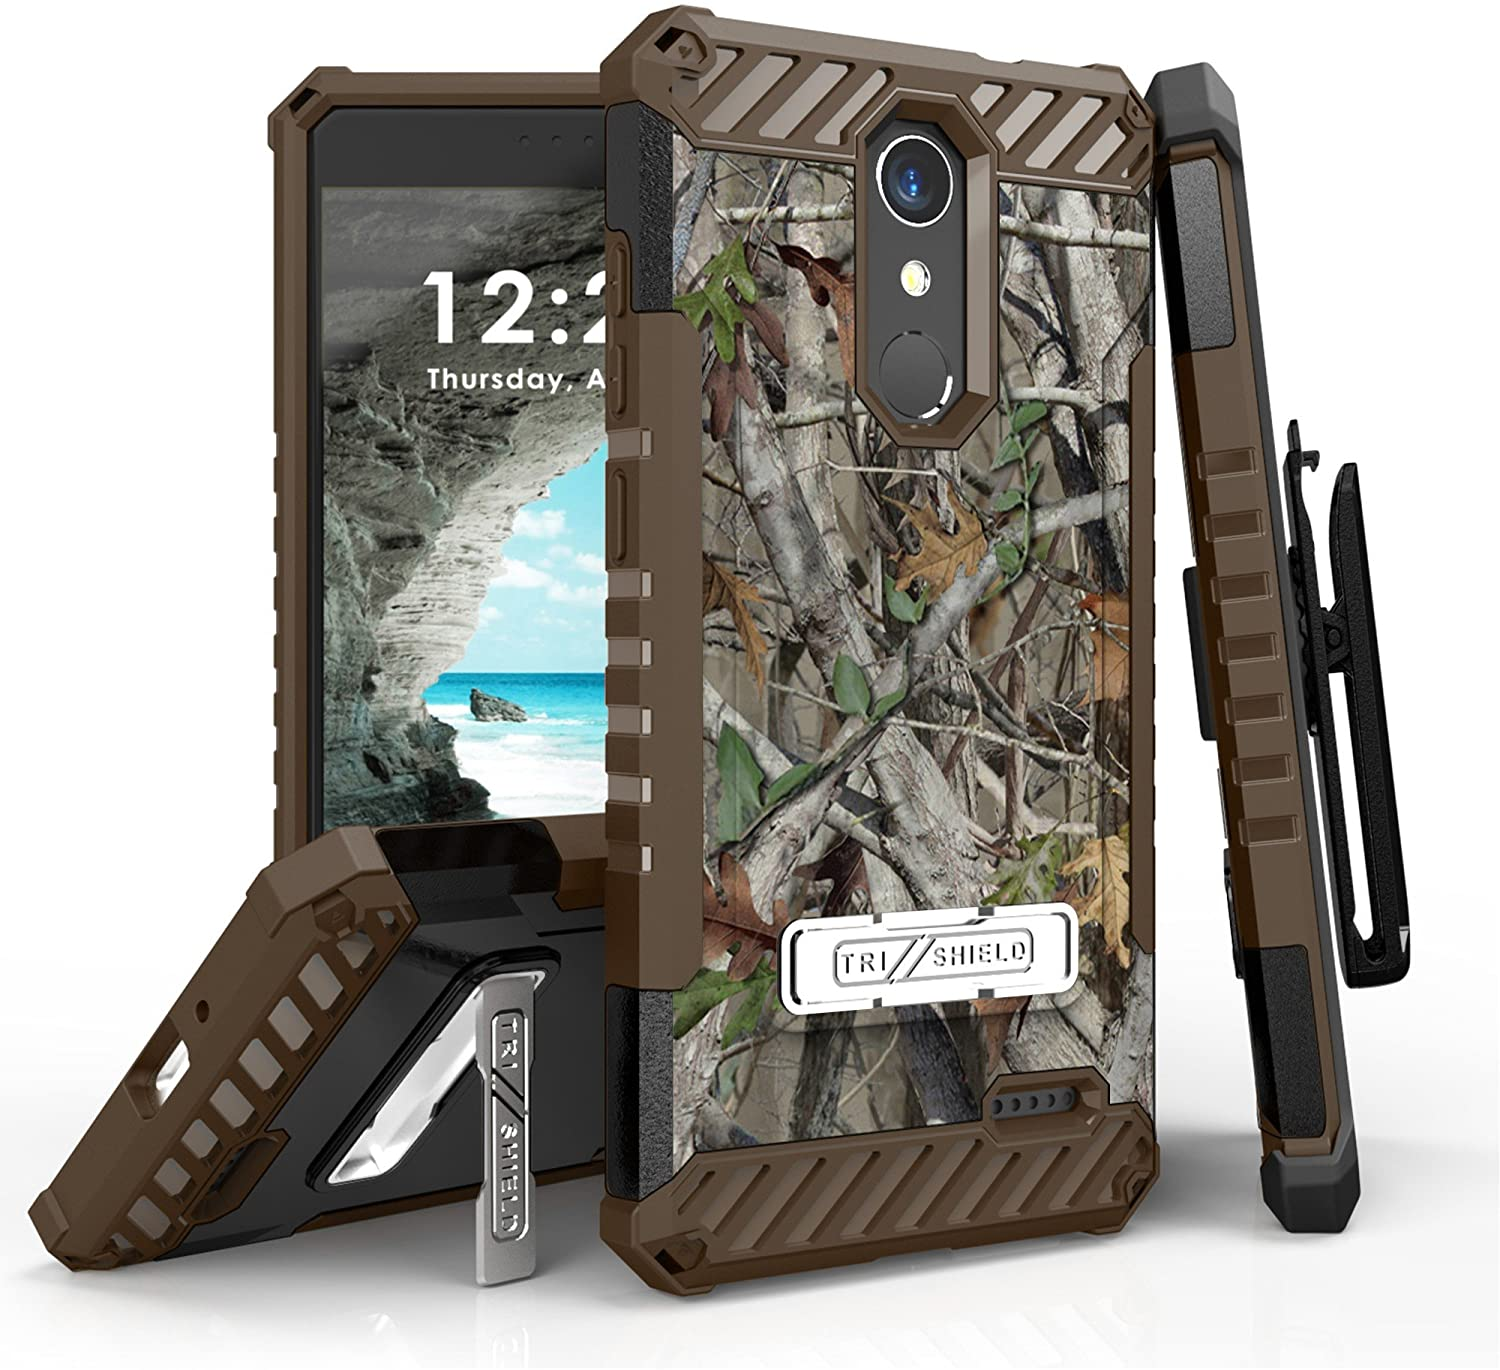 Beyond Cell Tri-Shield Case Compatible with ZTE Blade Spark Z971, Max One LTE Z719DL, Grand X 4 Z956 - Military Grade Protective Phone Cover with Swivel Belt Clip Holster - Camo